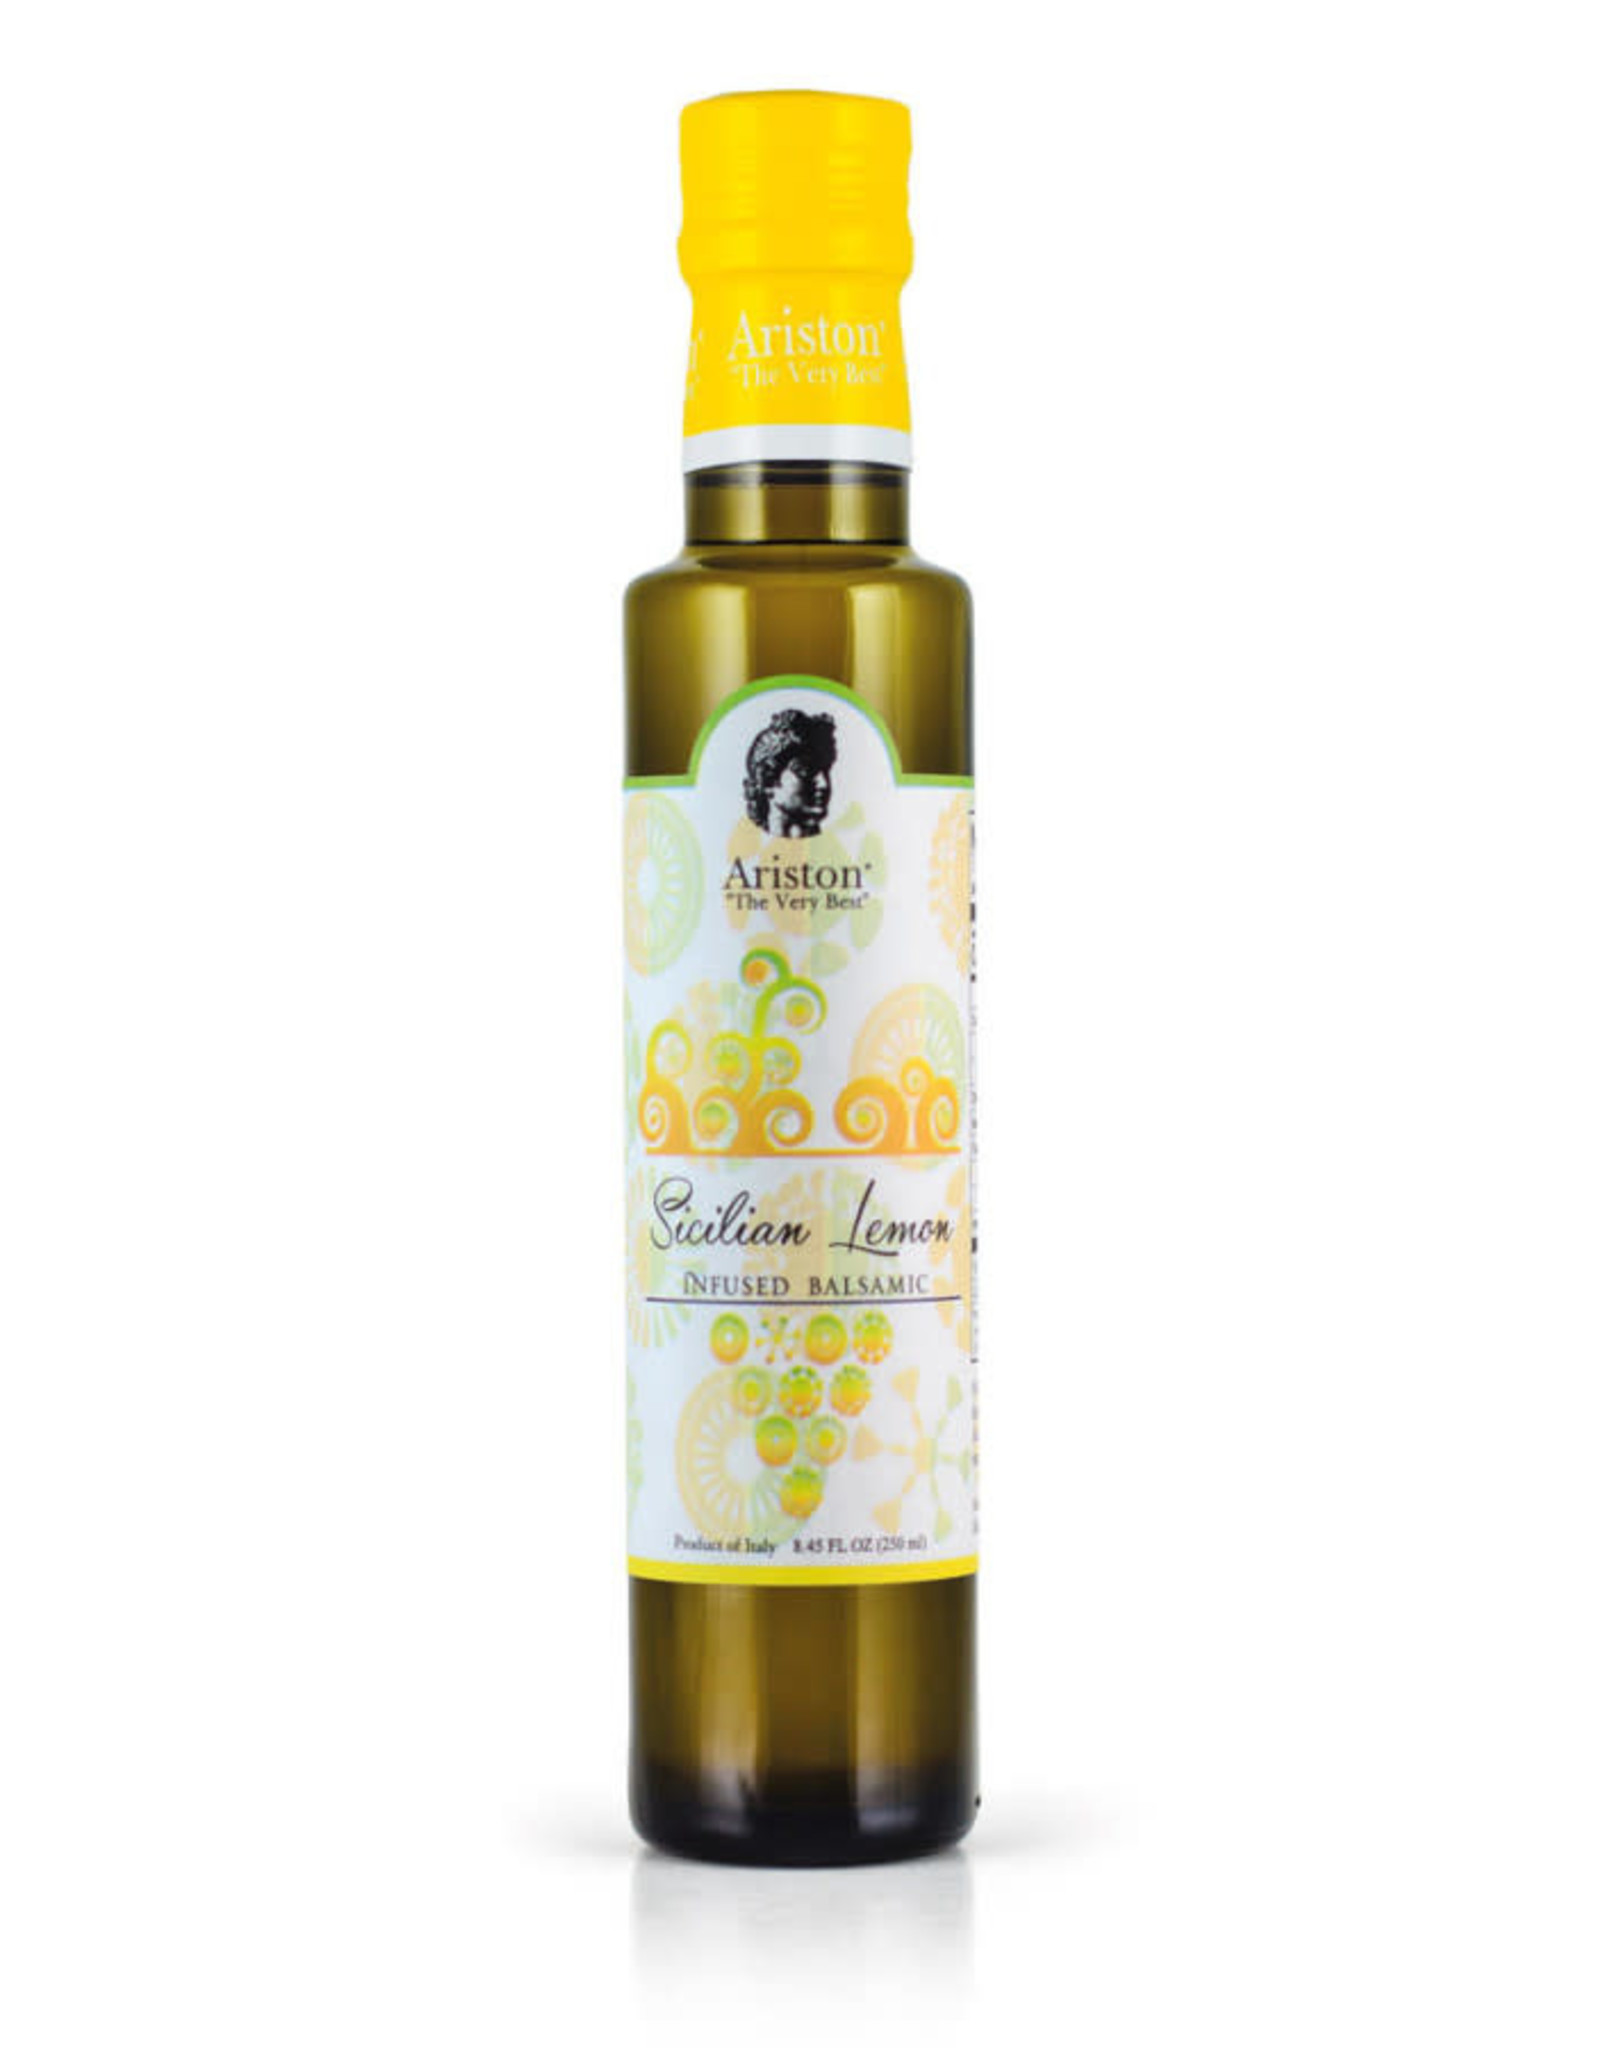 Ariston SICILIAN LEMON INFUSED WHITE BALSAMIC